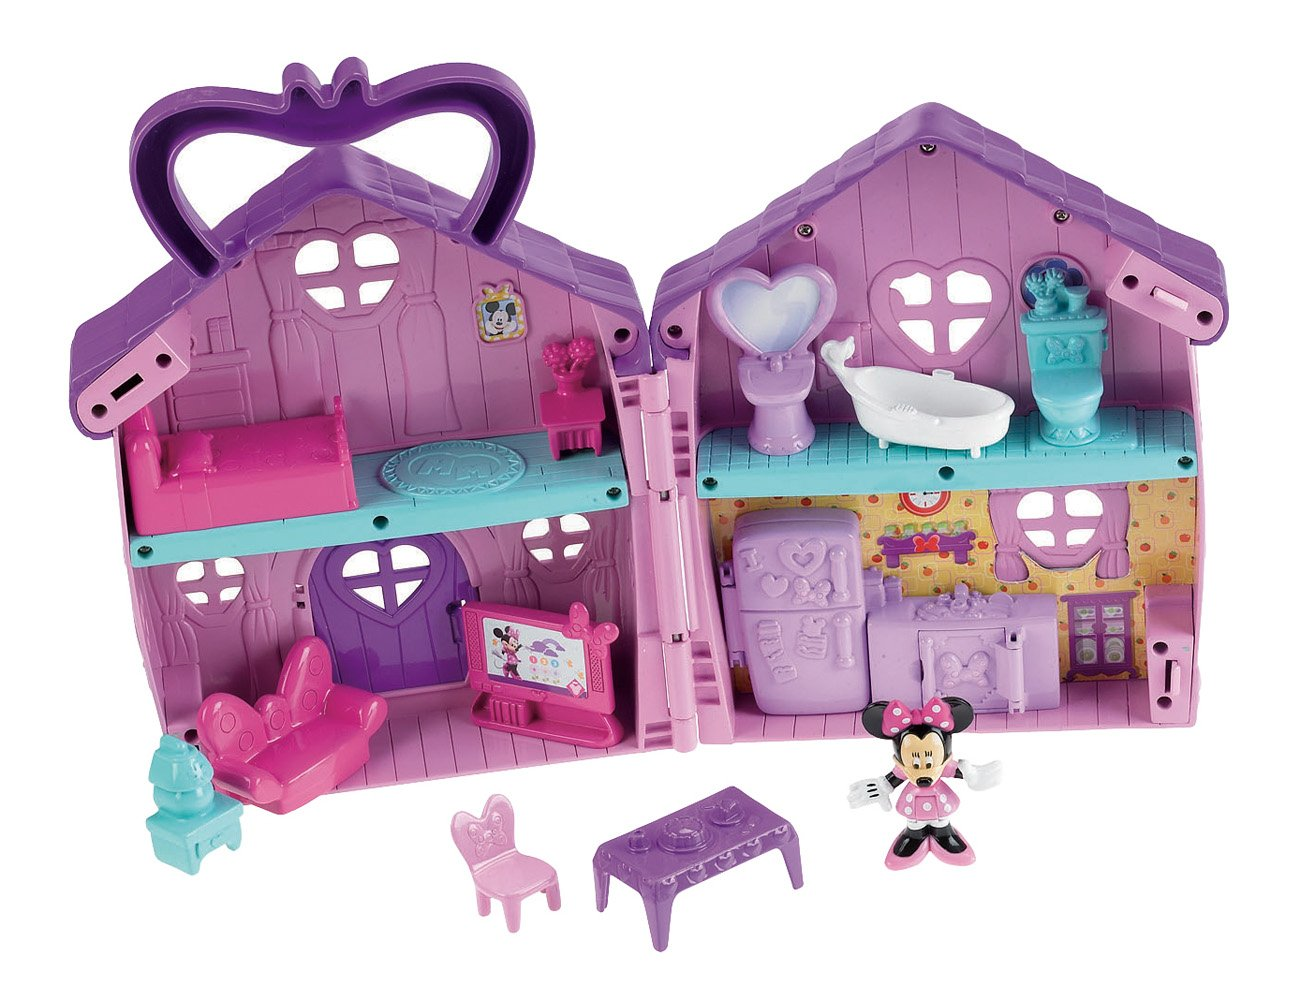 Mickey Mouse Clubhouse Minnie's House Playset